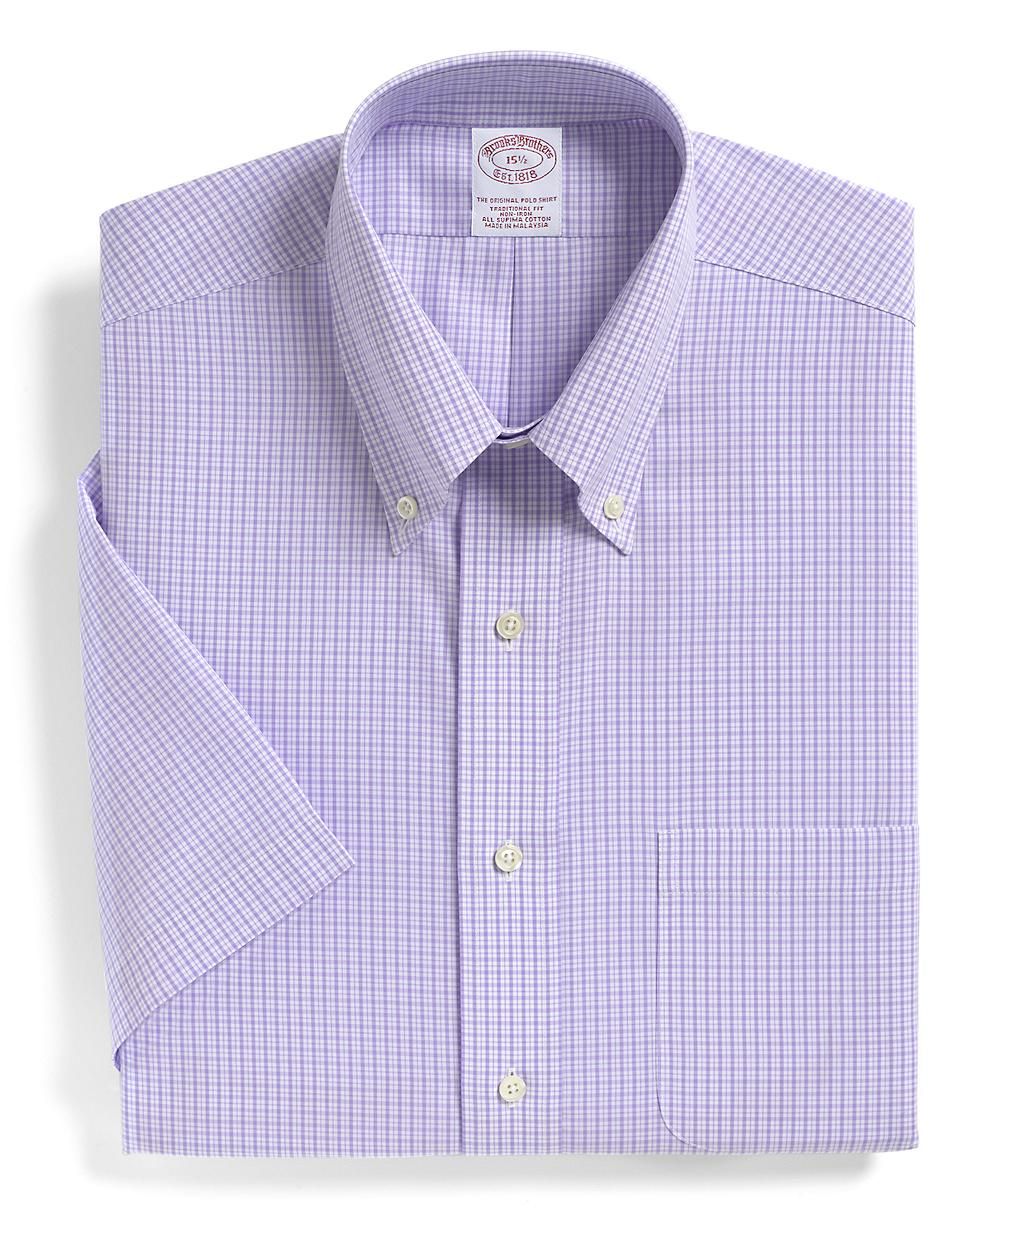 Brooks brothers supima cotton noniron traditional fit for Brooks brothers dress shirt fit guide